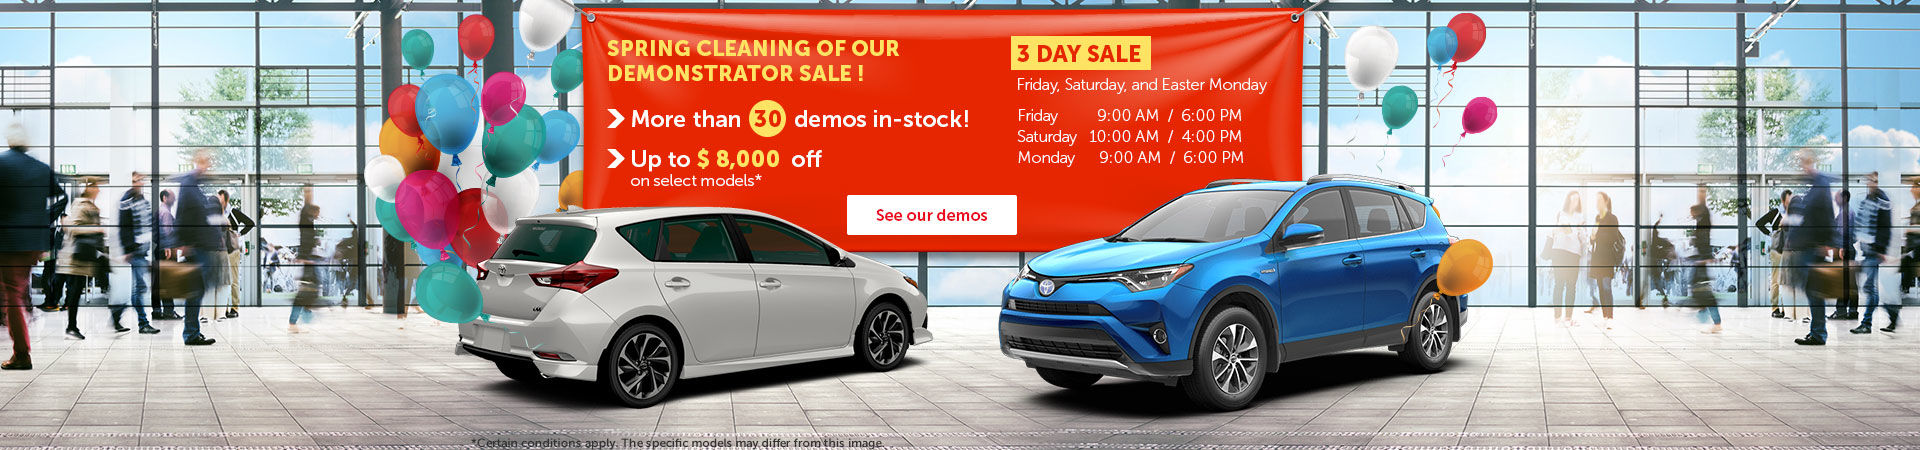 Spring Cleaning of our Demonstrator Sale